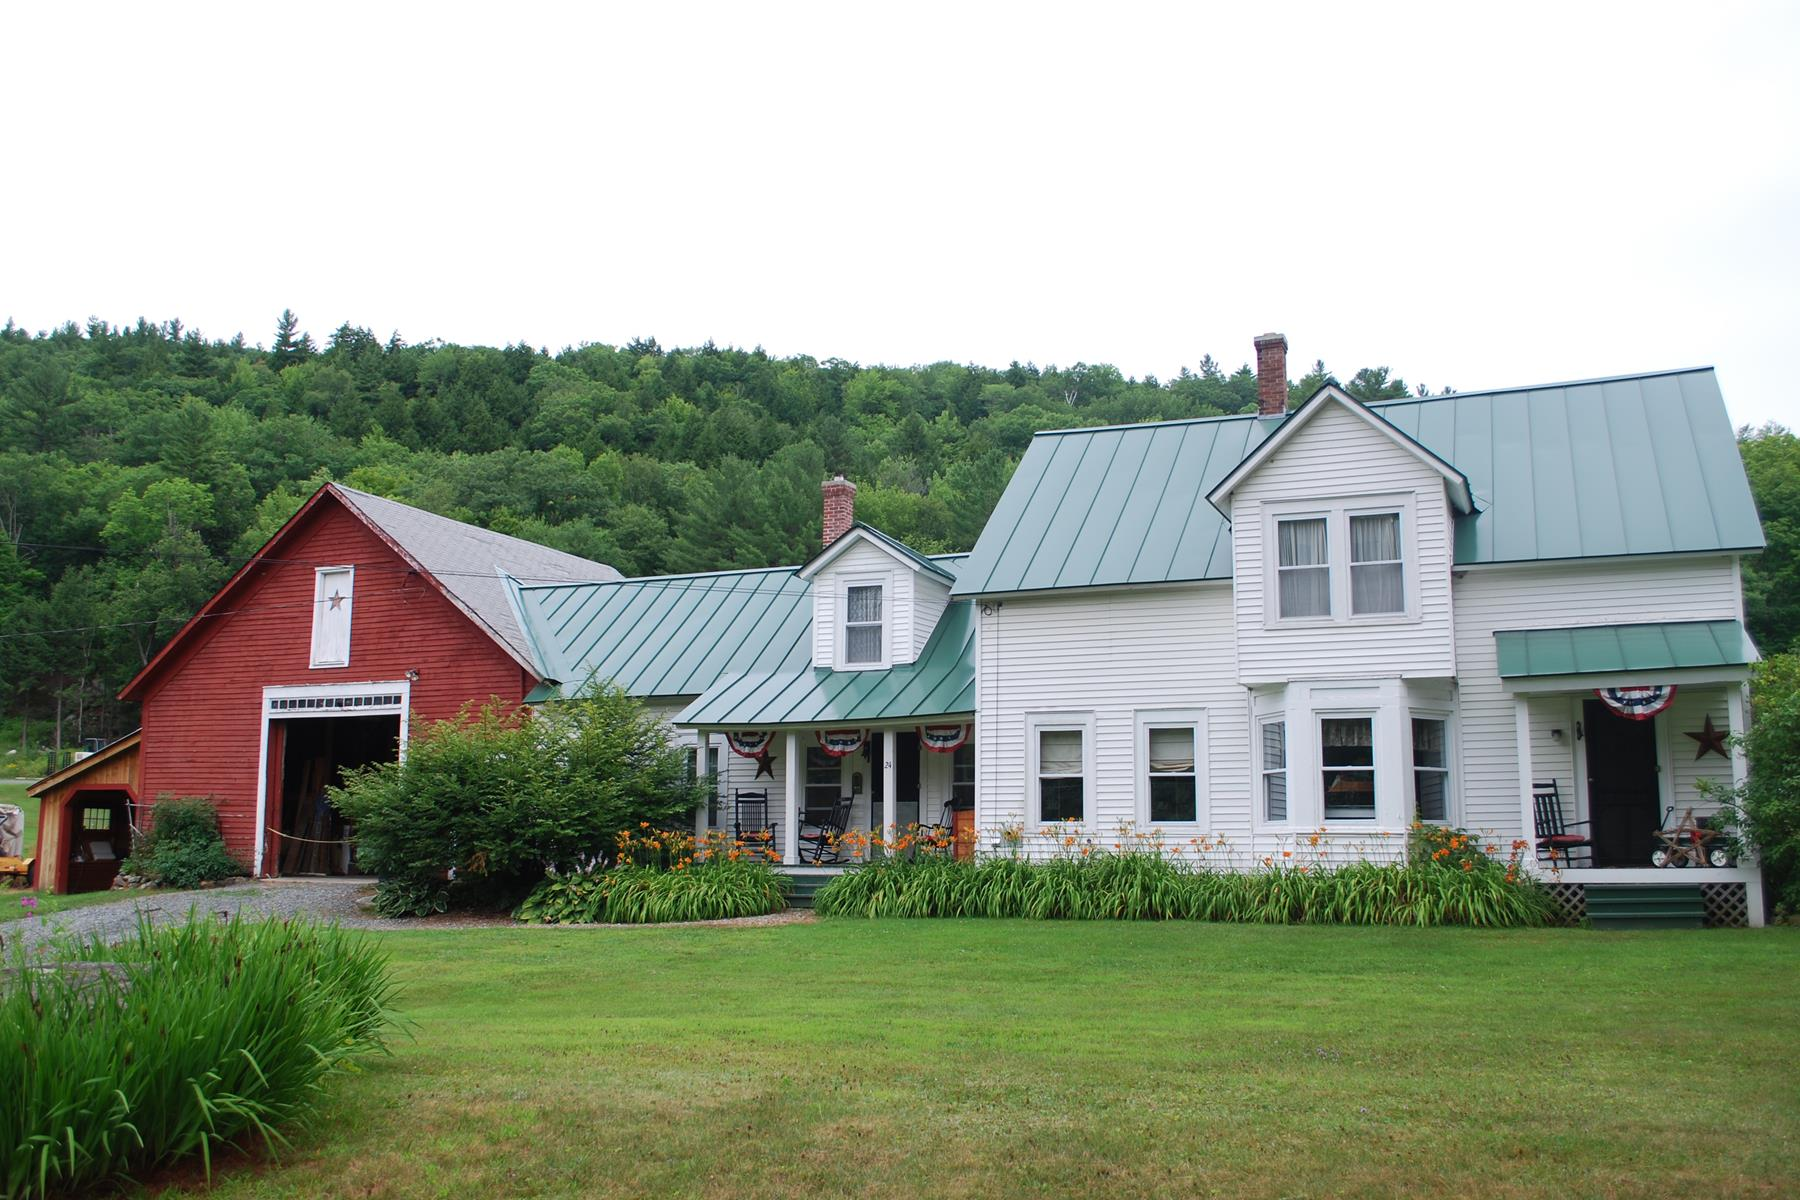 Single Family Home for Sale at 24 Old Goshen Rd, Newport Newport, New Hampshire, 03773 United States